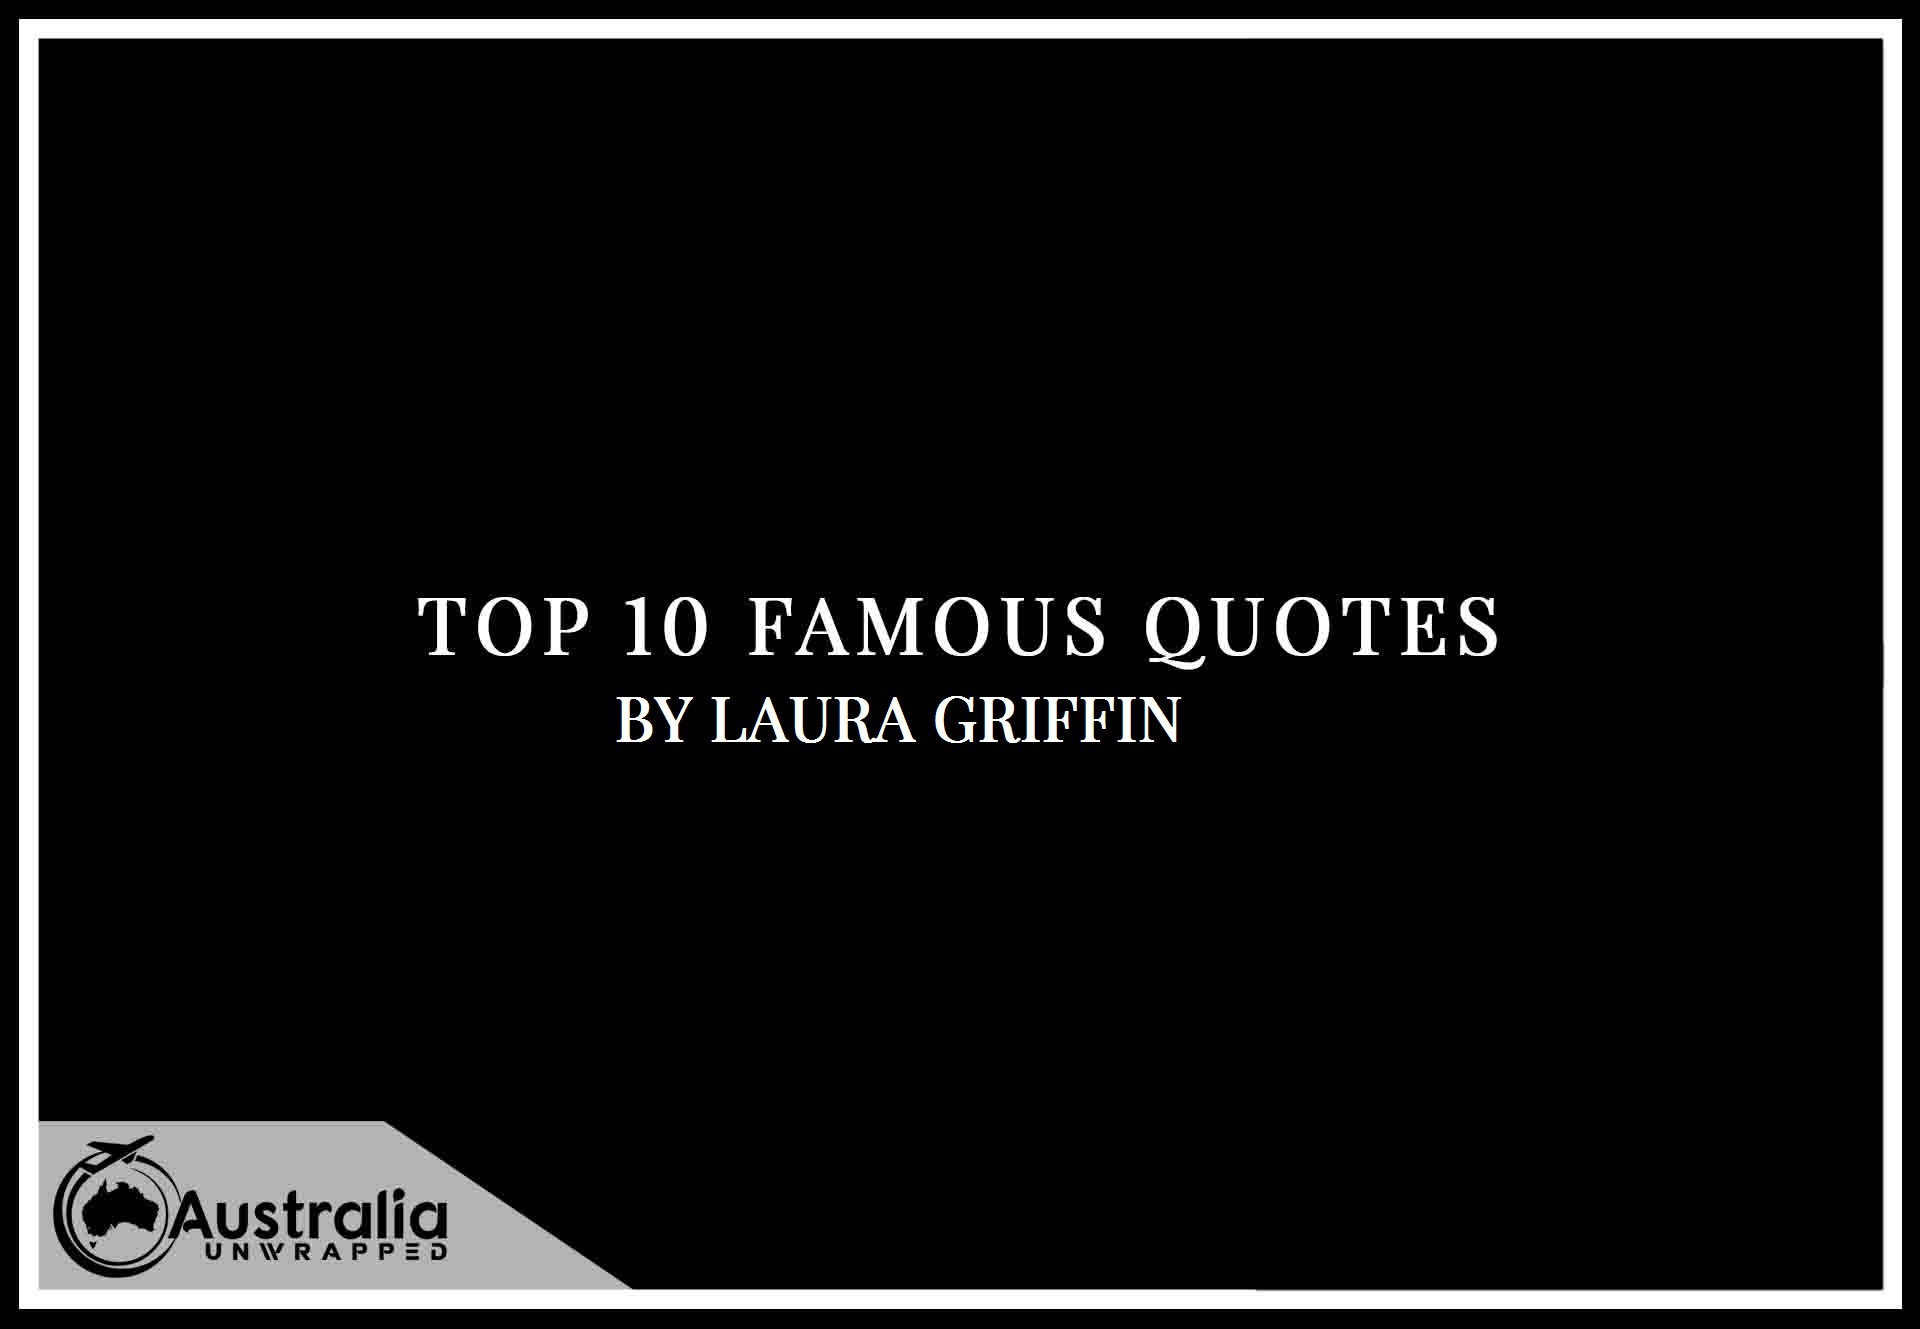 Laura Griffin's Top 10 Popular and Famous Quotes